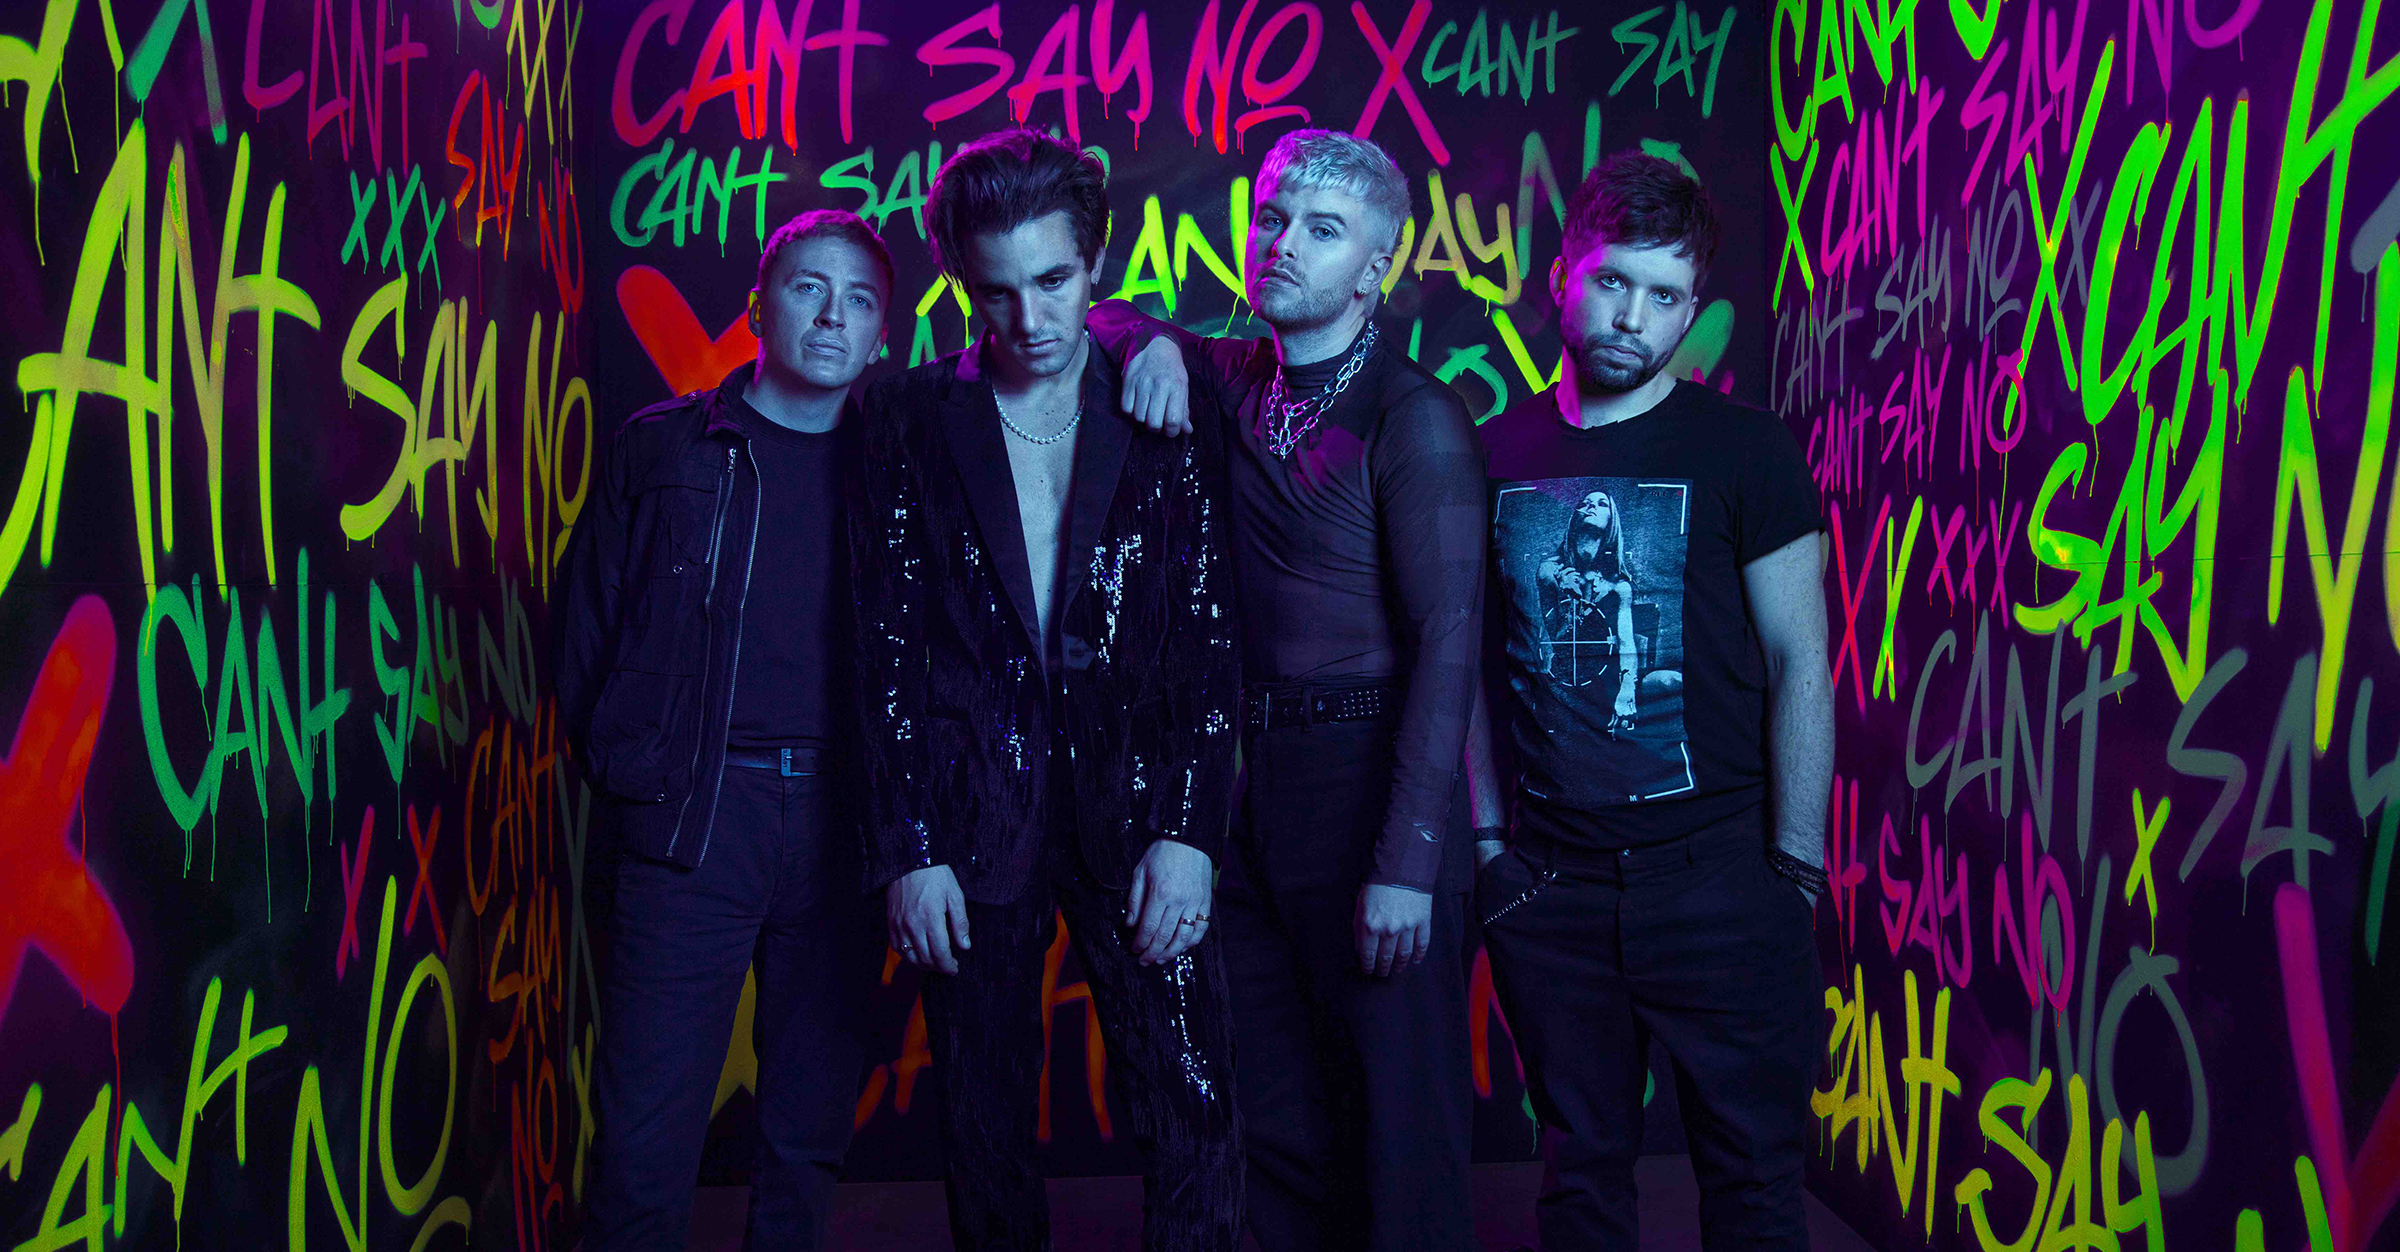 WILD YOUTH share new single 'Can't Say No' - Listen Now!